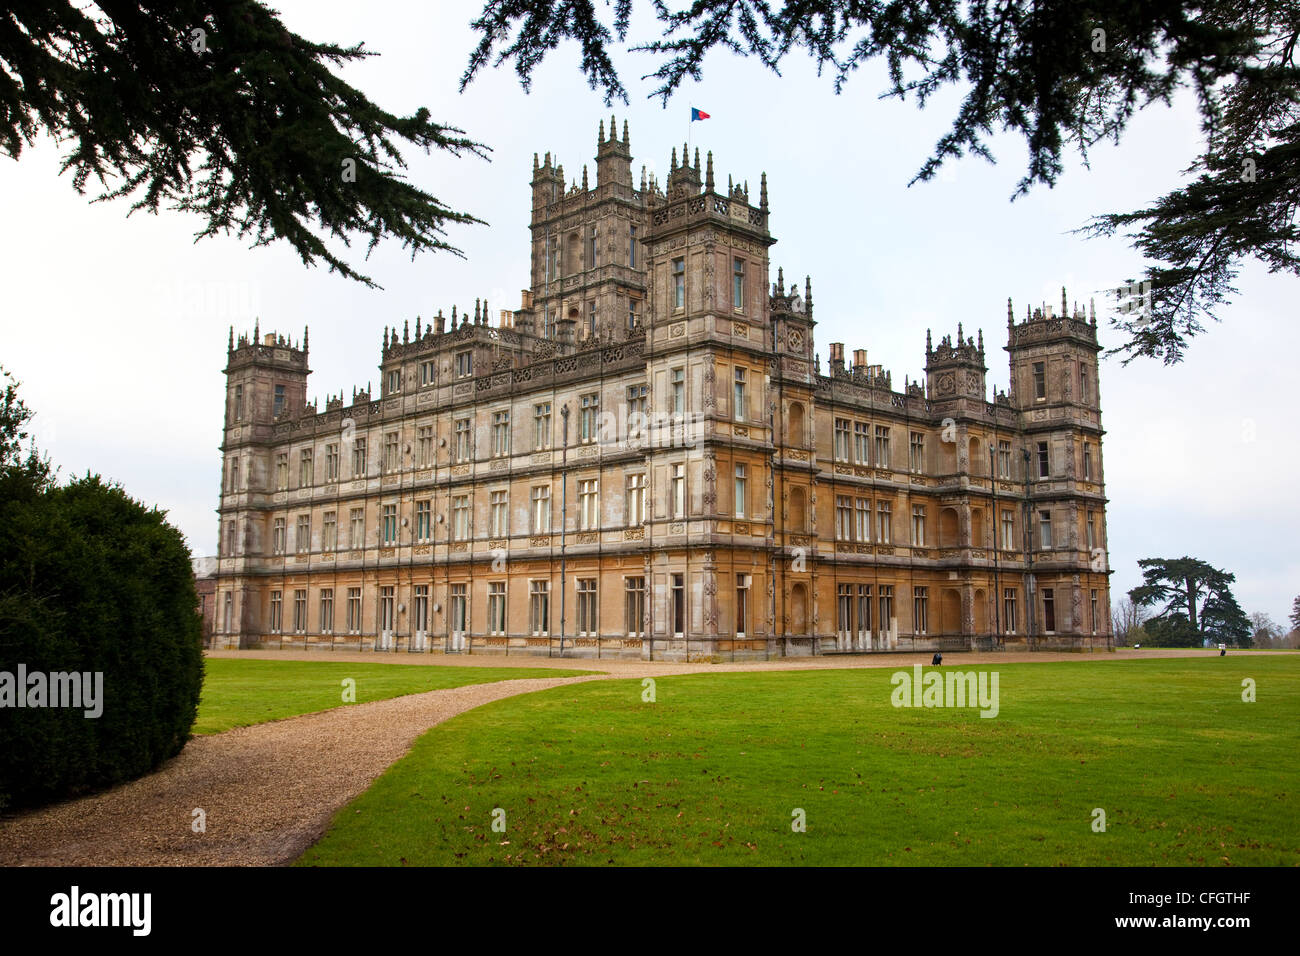 Exterior of Highclere Castle, Newbury, Berkshire, England, UK - Stock Image